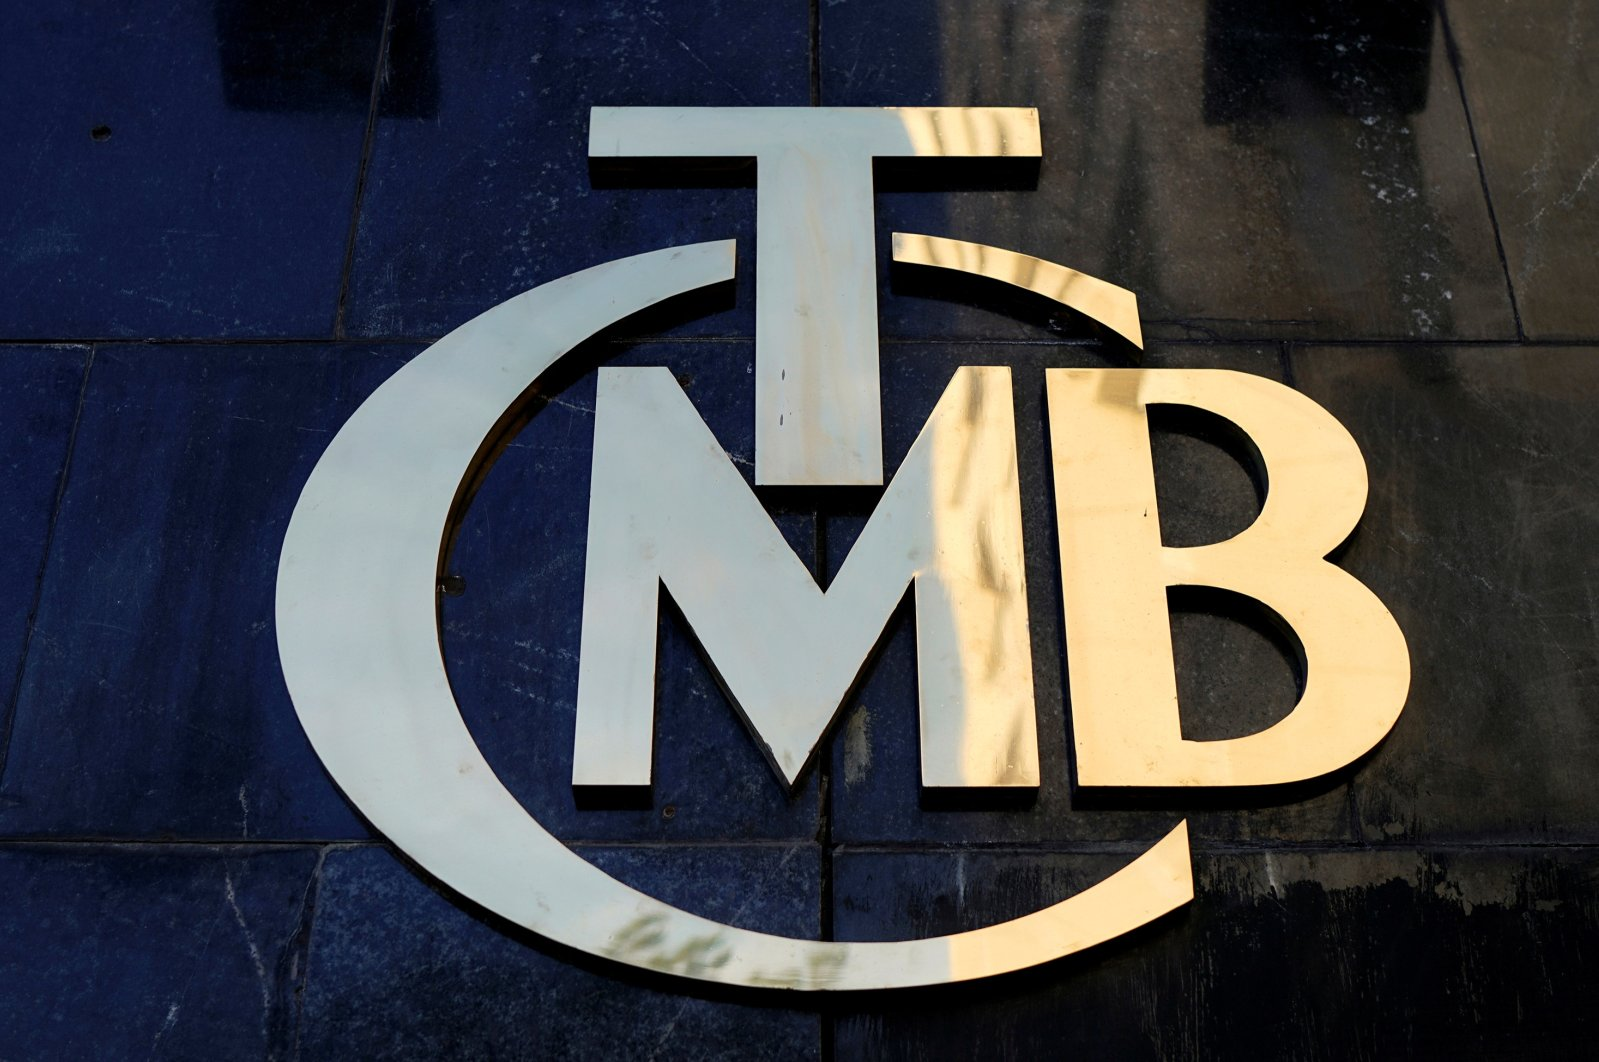 A logo of Turkey's Central Bank (TCMB) at the entrance of the bank's headquarters in Ankara, Turkey, April 19, 2015. (Reuters Photo)